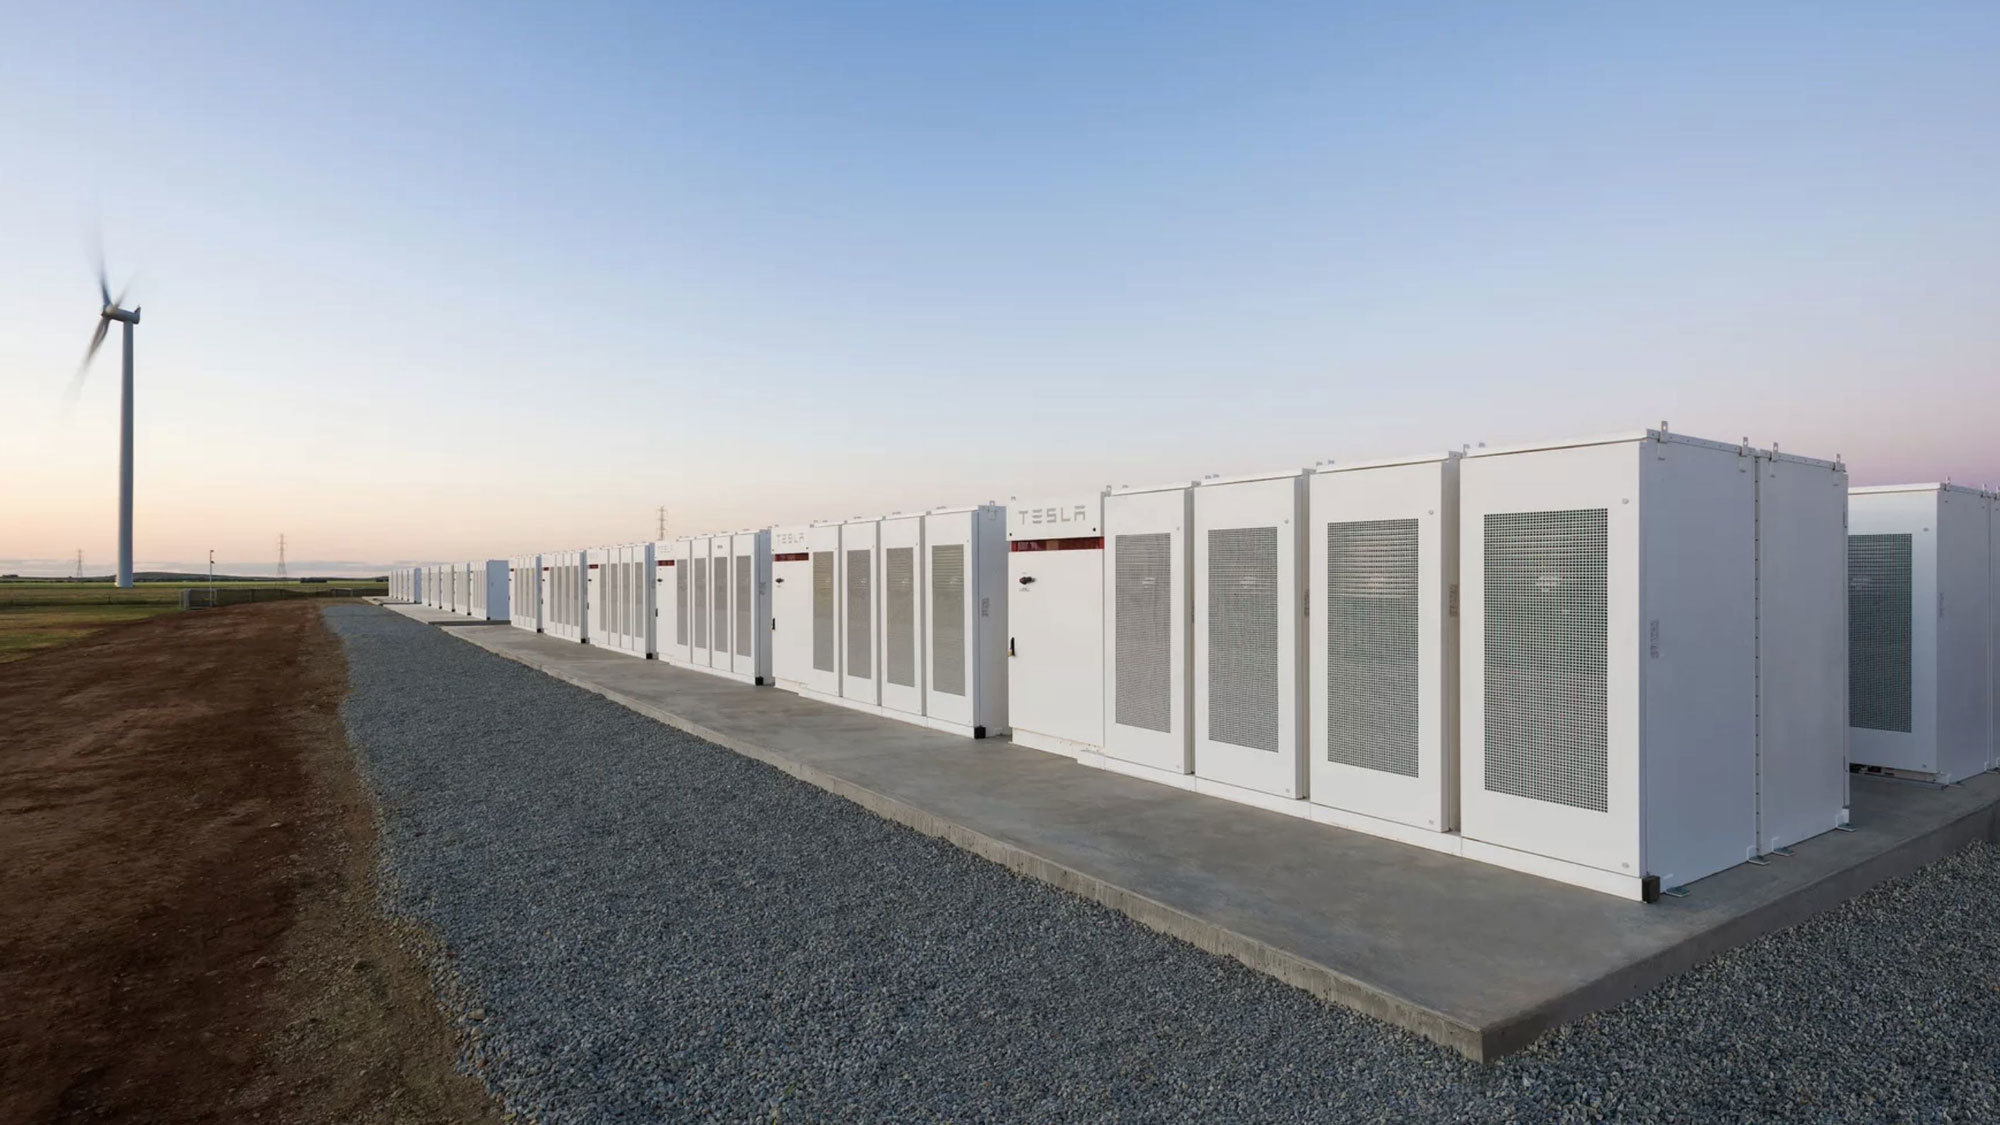 In Boost for Renewables, Grid-Scale Battery Storage Is on the Rise